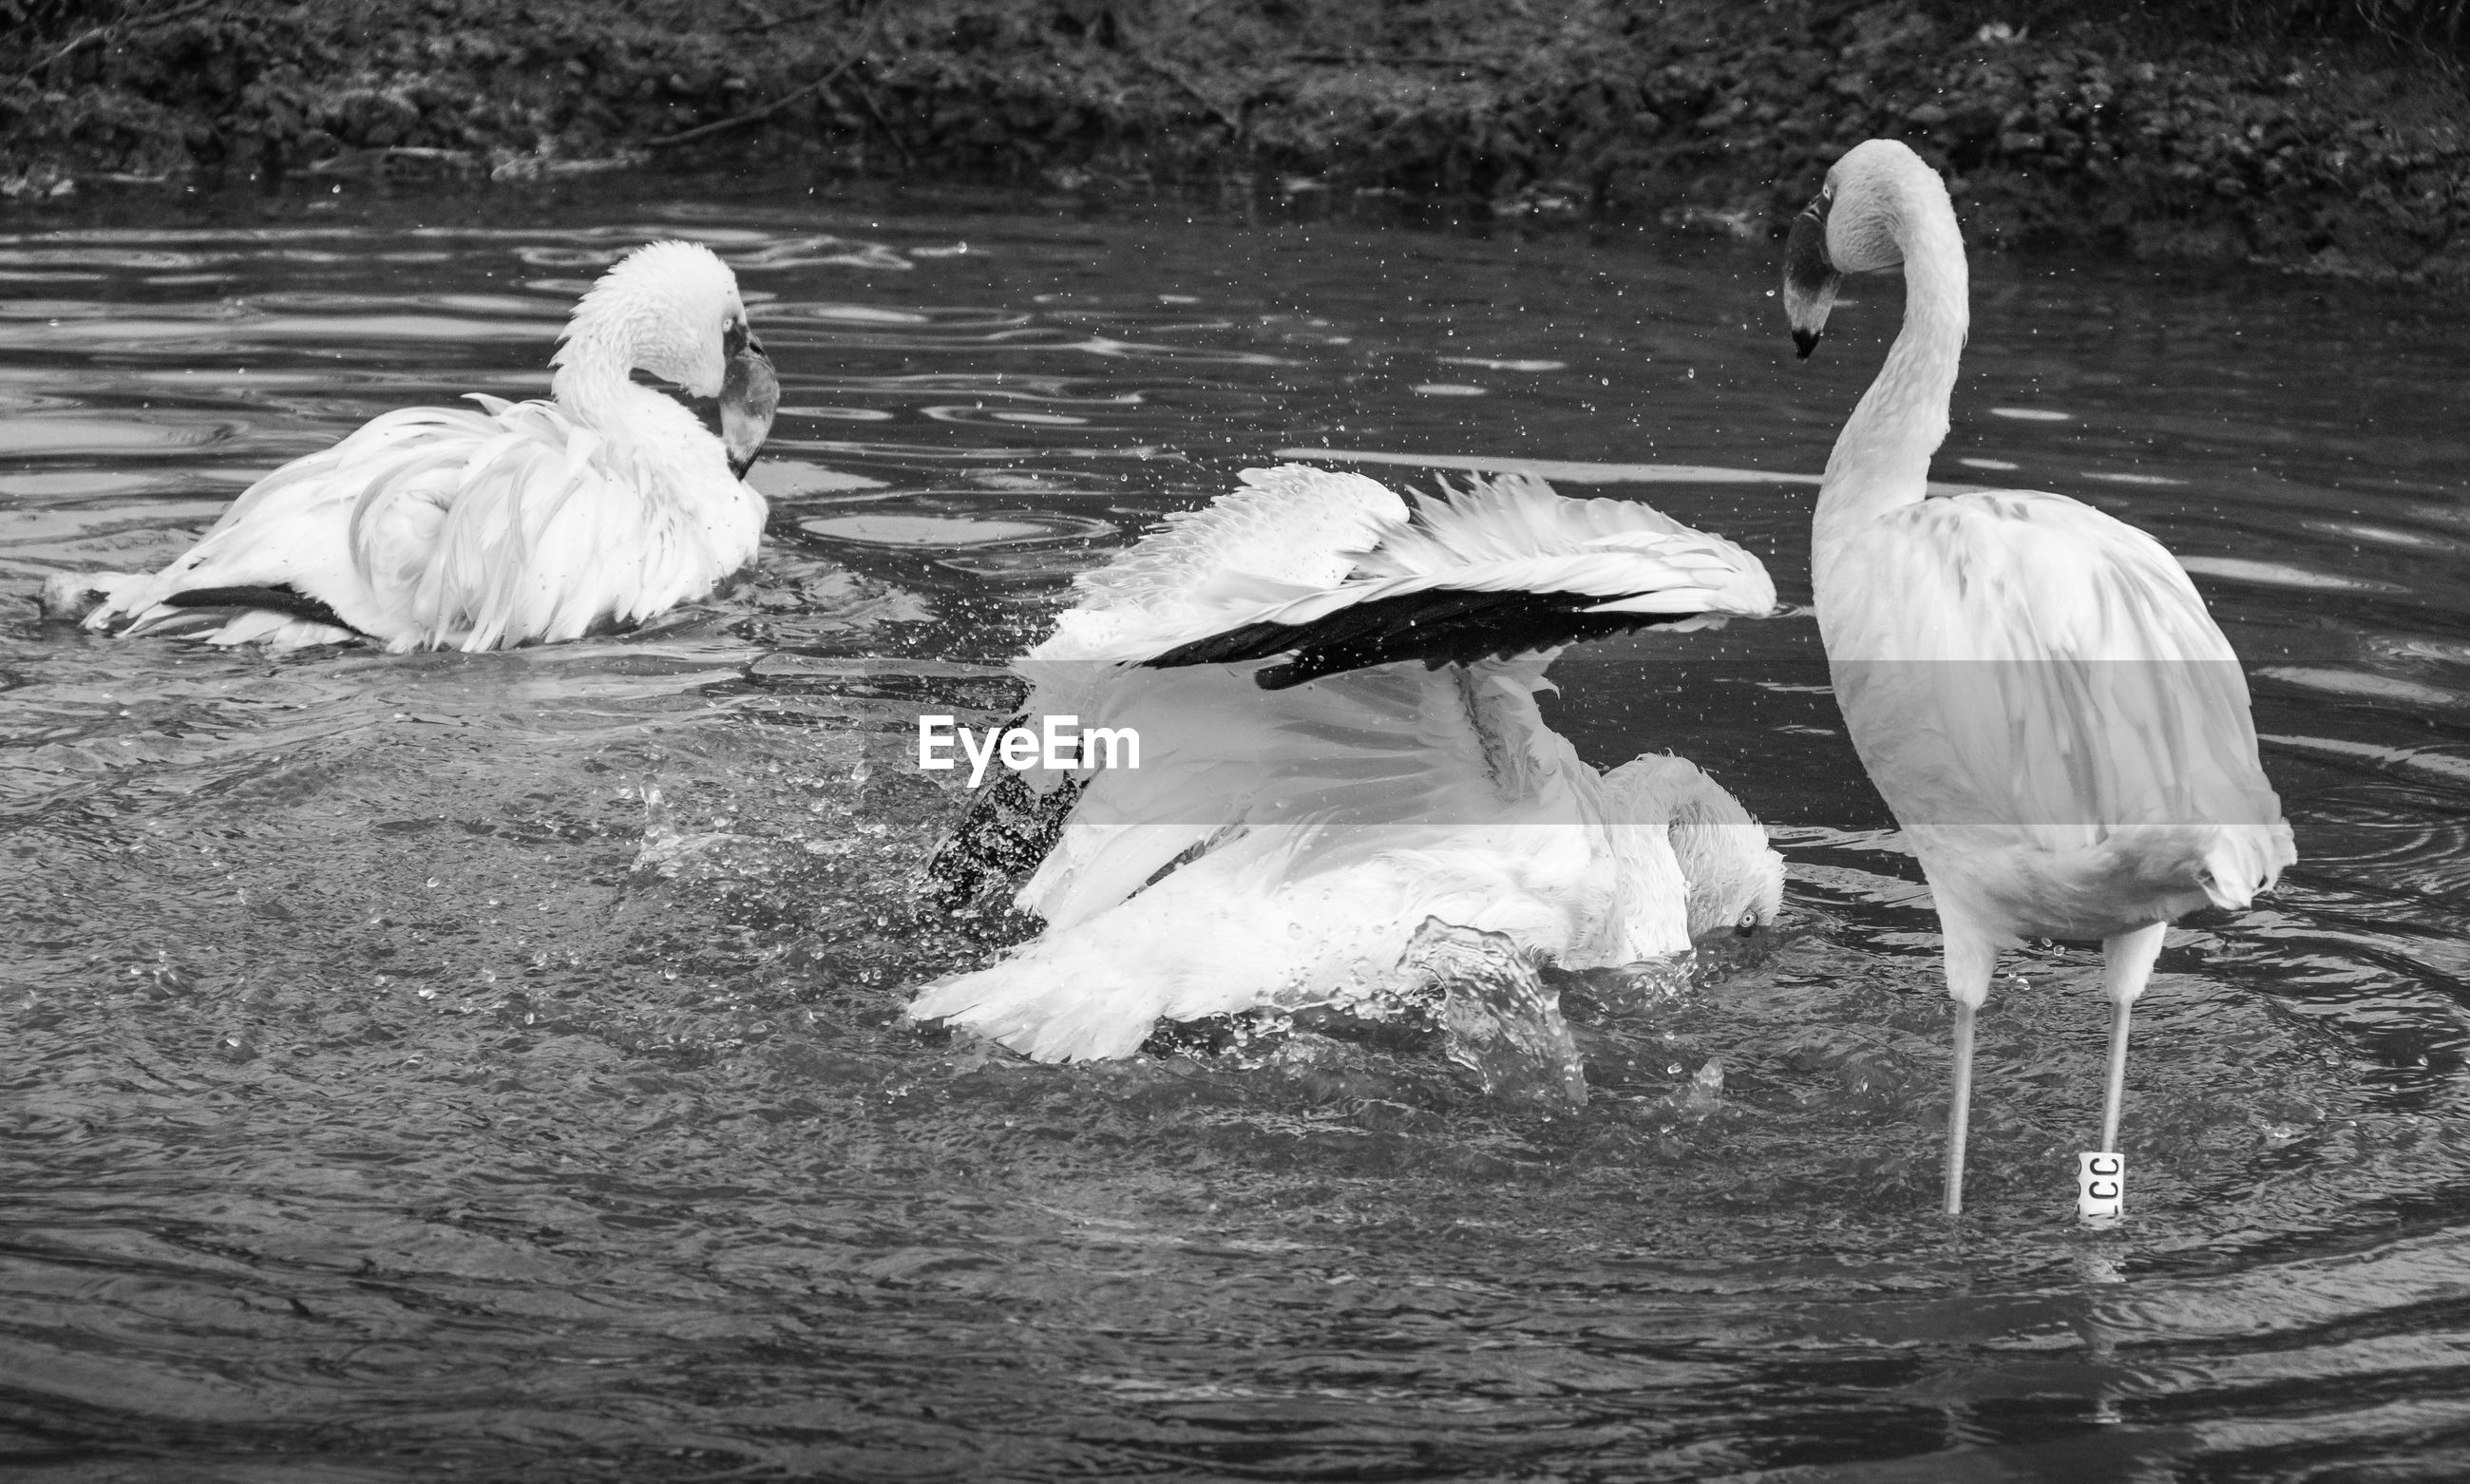 bird, animal themes, vertebrate, animal, group of animals, animals in the wild, water, lake, animal wildlife, waterfront, no people, day, nature, white color, lakeshore, water bird, beak, swan, three animals, animal family, flock of birds